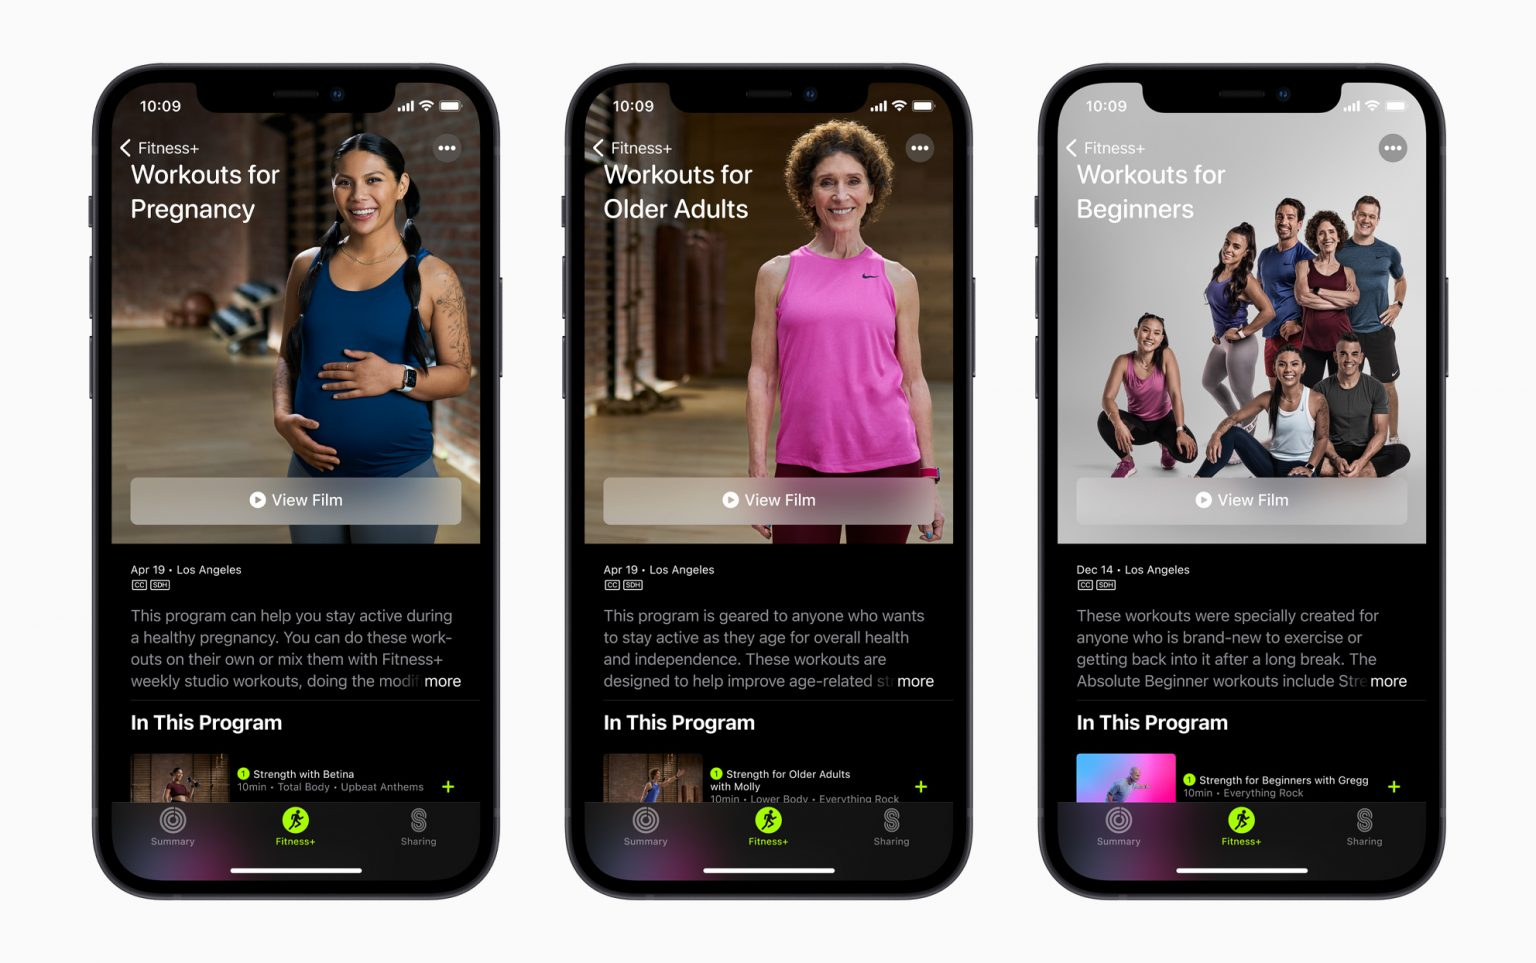 Apple Fitness+ is adding several new workout categories on April 19: Workouts for Pregnancy, Workouts for Older Adults, and Workouts for Beginners.